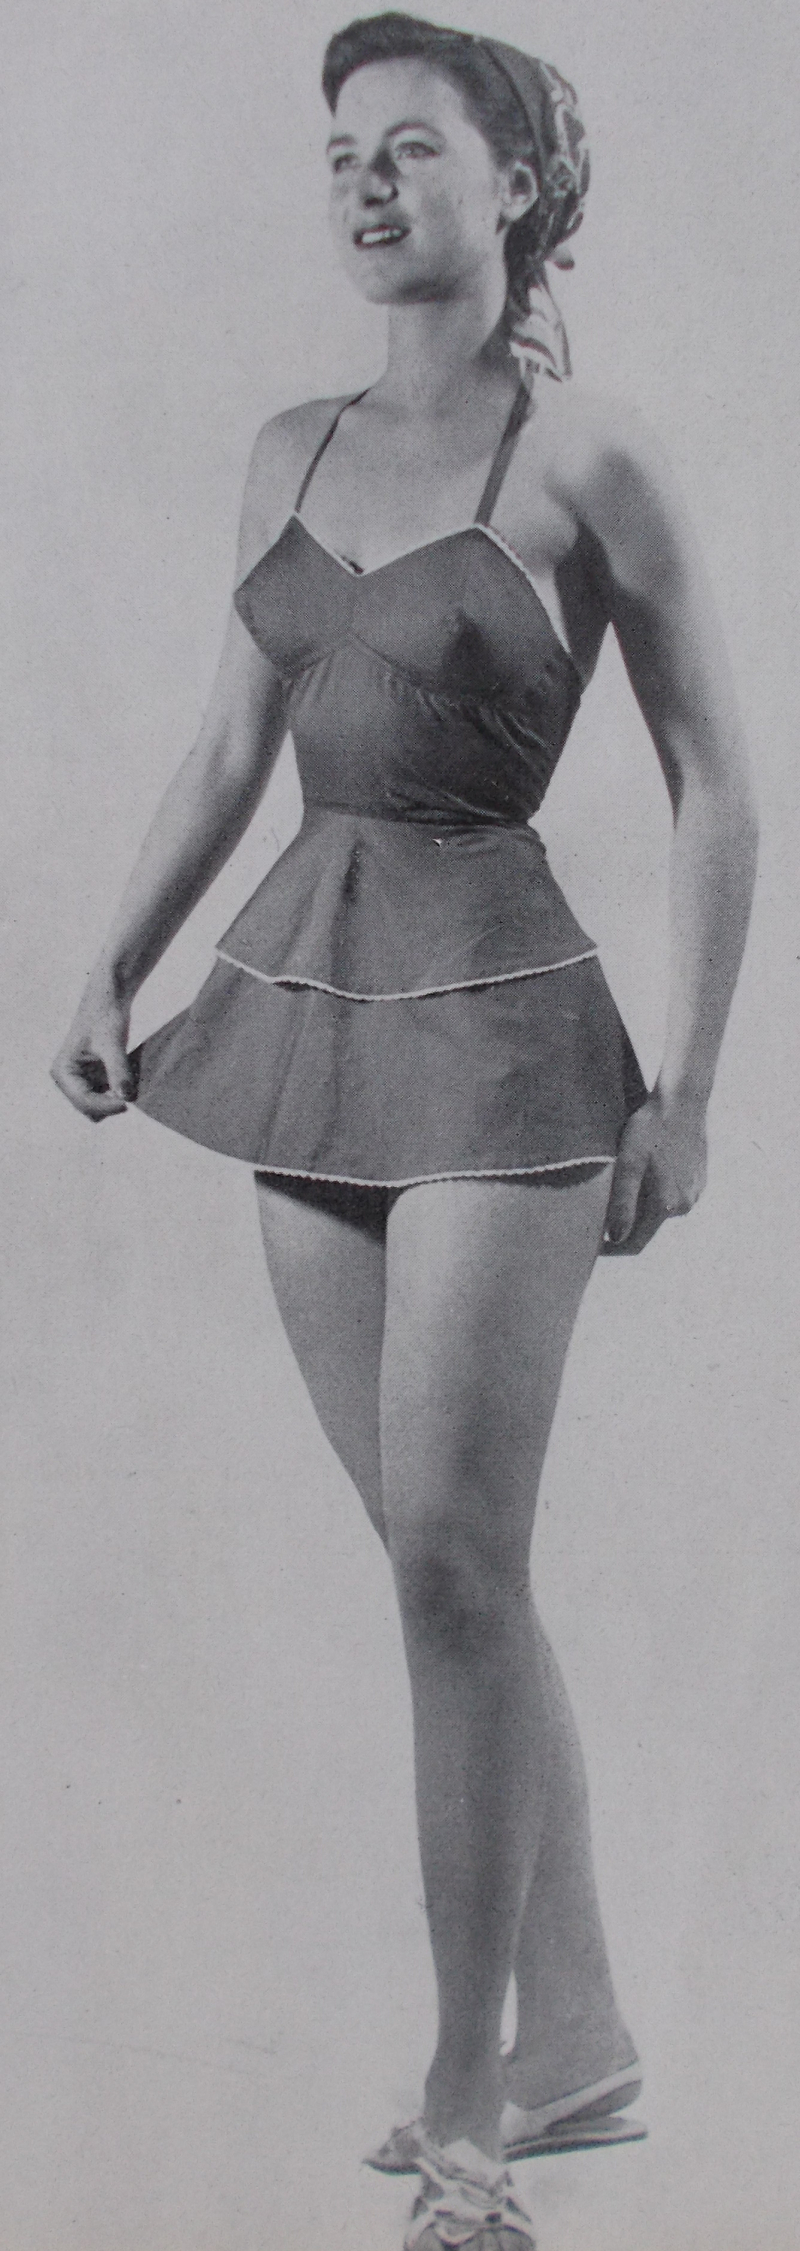 Maddalena_swimsuits_1950s_ArchiveAnnaBattista_3_edit